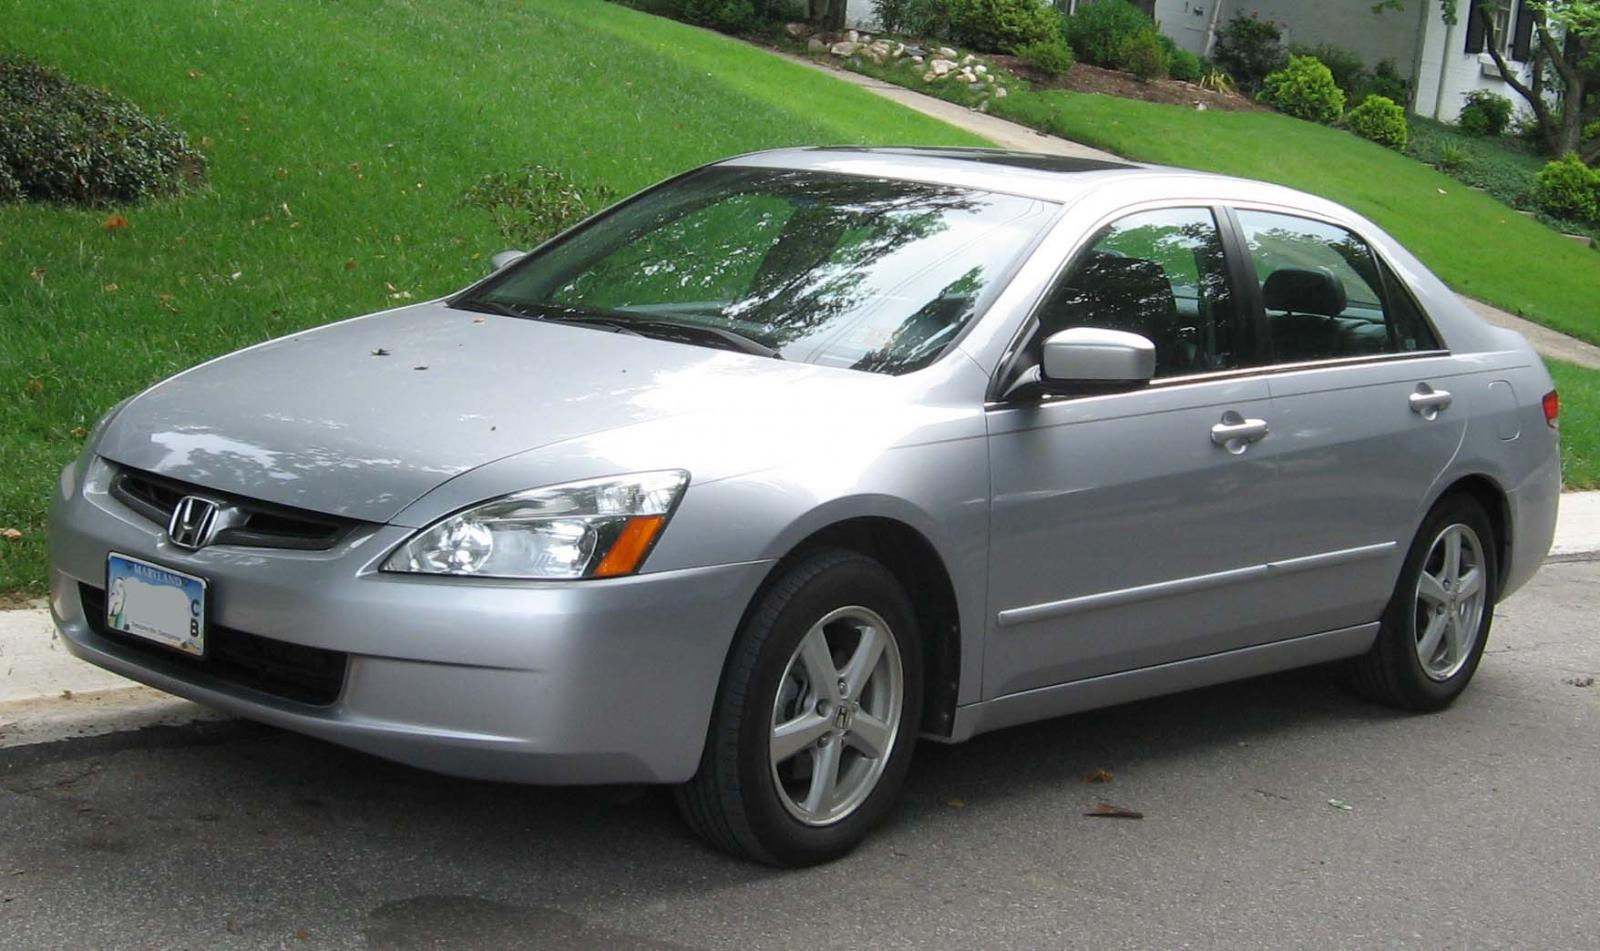 800 1024 1280 1600 origin 2003 Honda Accord ...